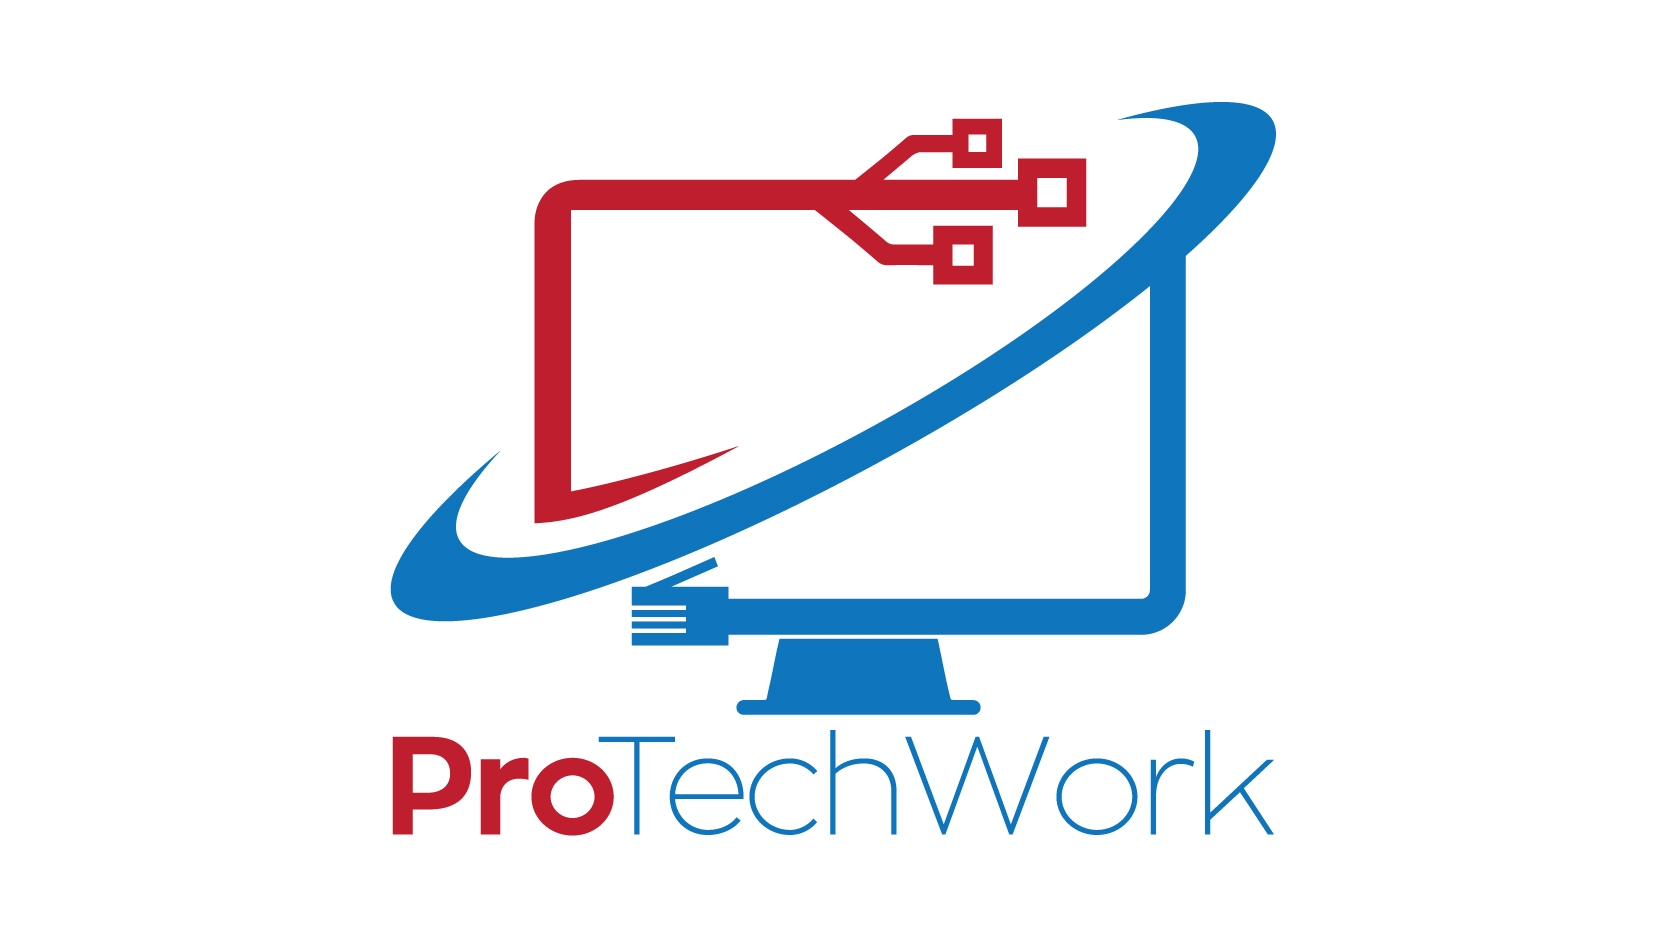 Computer Repair Web Design Survielance  -  Nick Gentile 762-333-1295                     ProTechWork